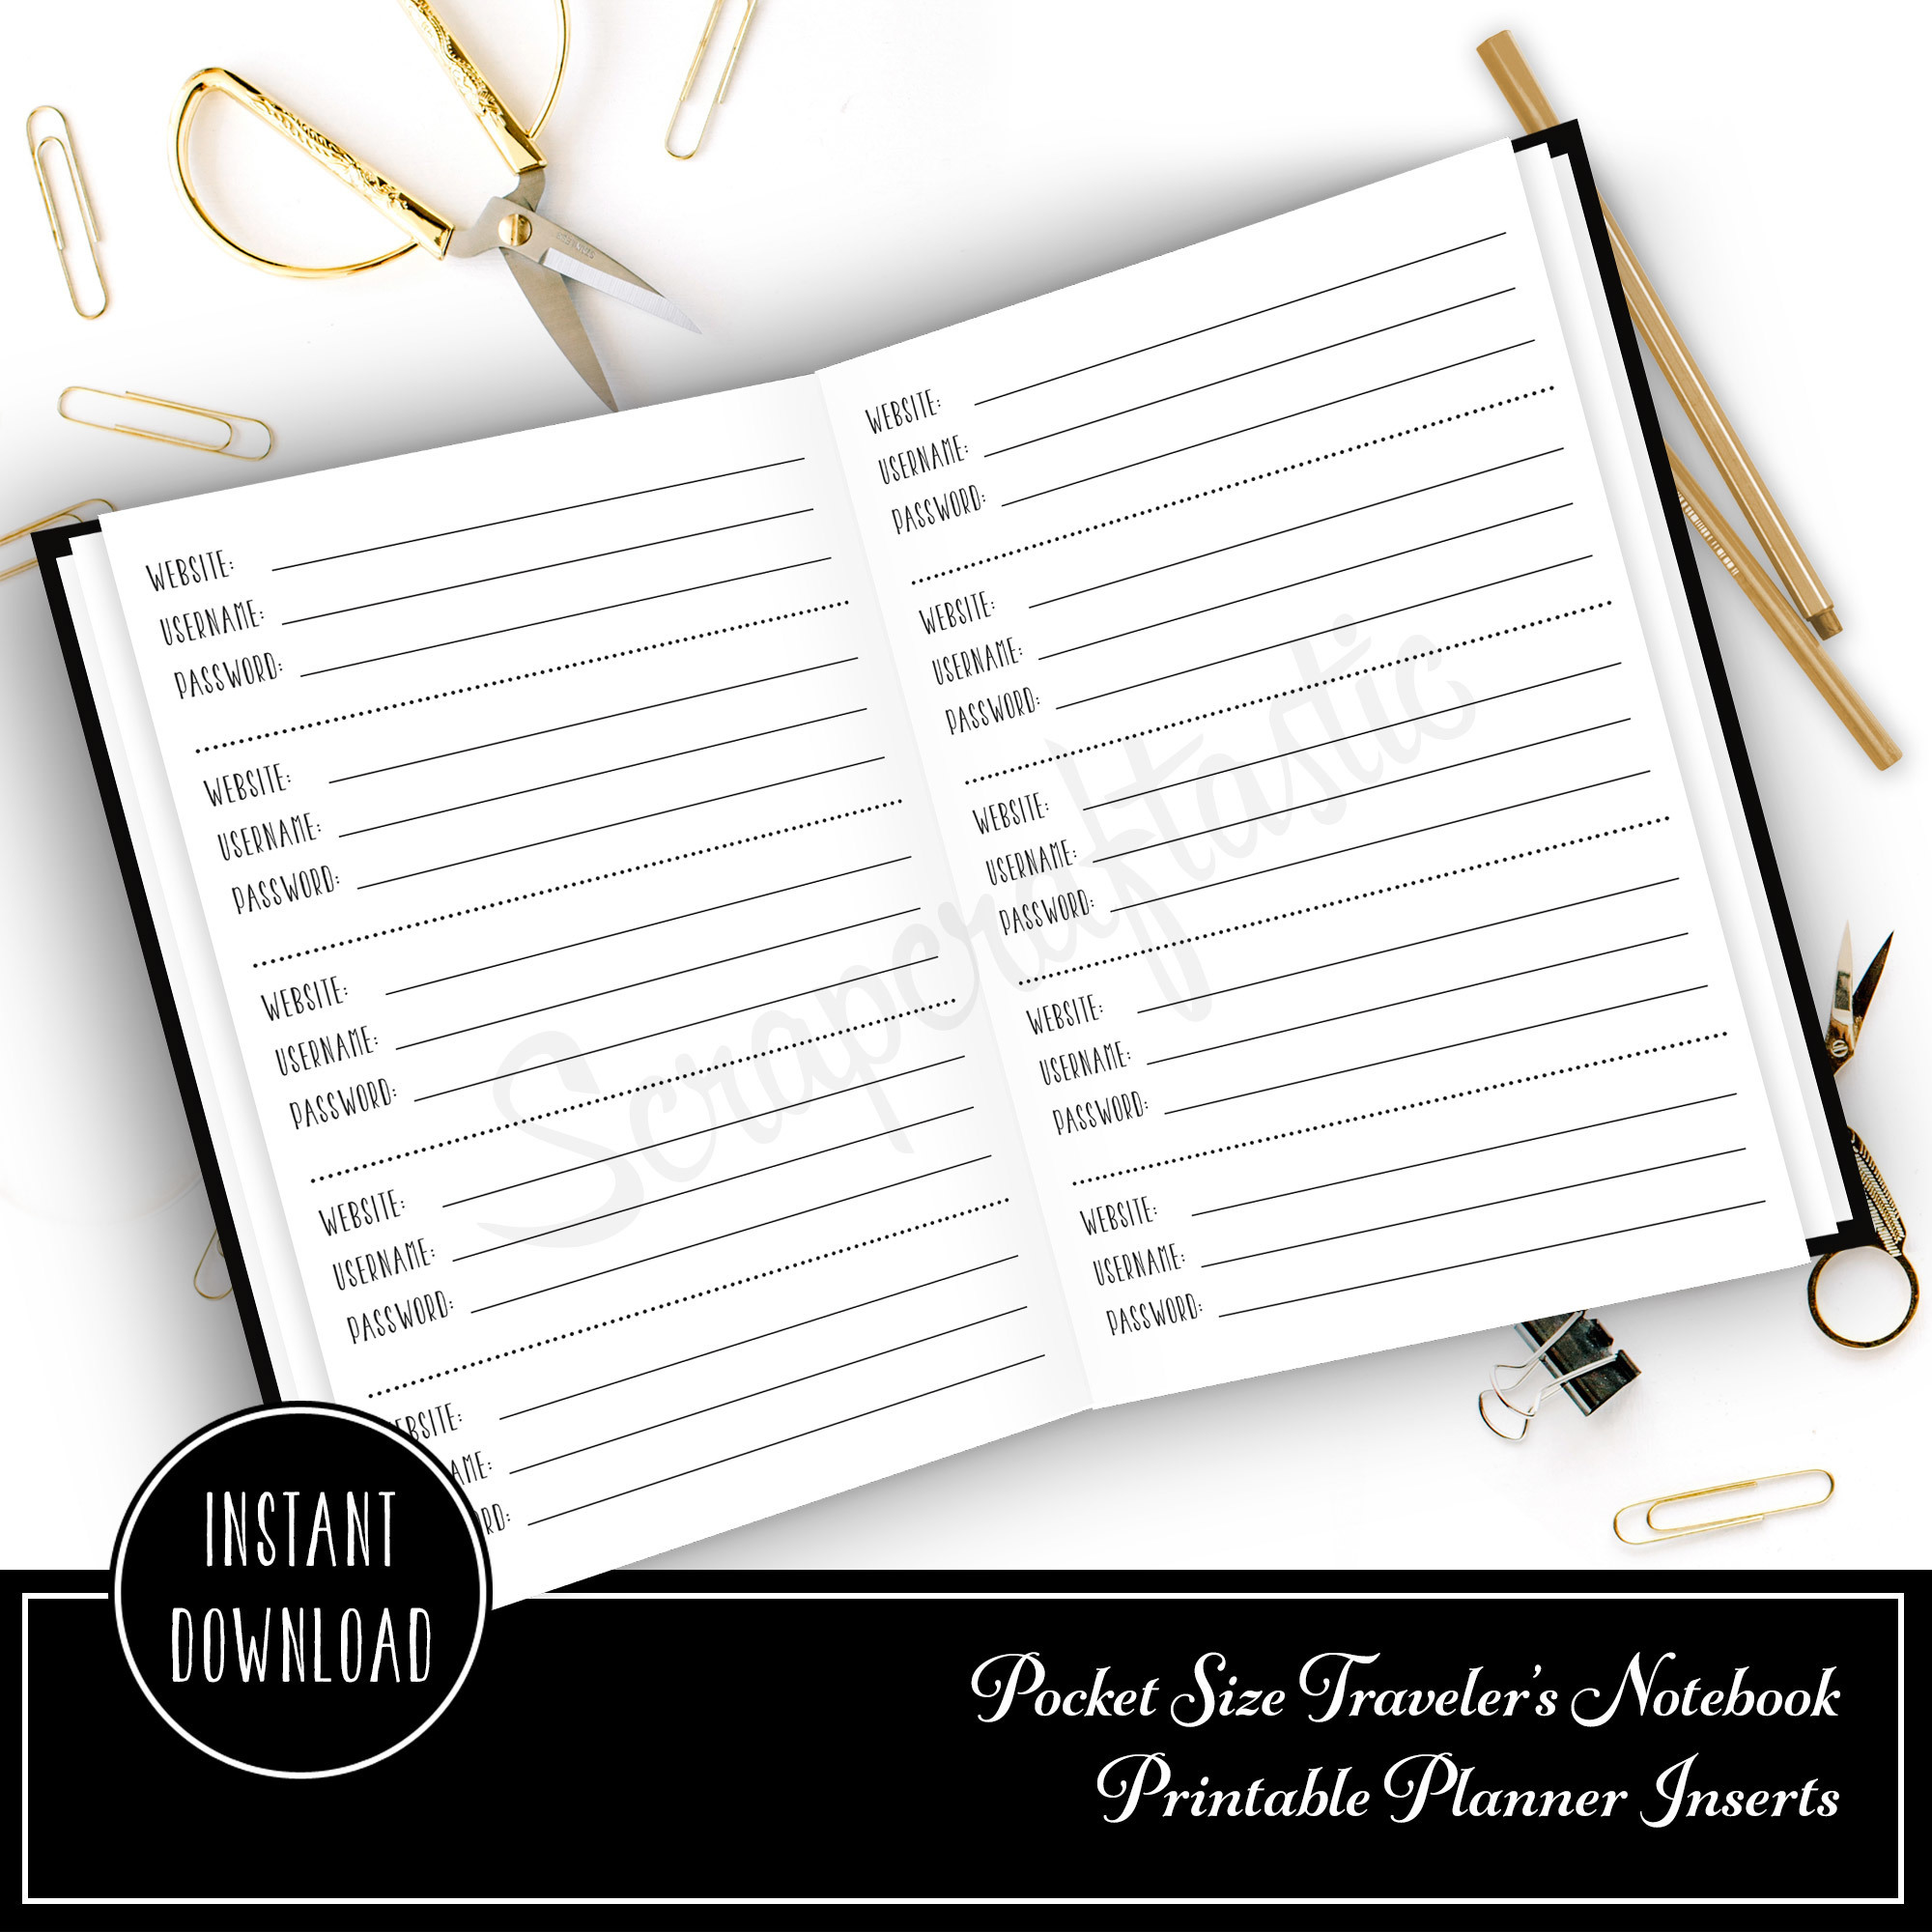 Password Pocket Size Traveler's Notebook Printable Planner Inserts 00810